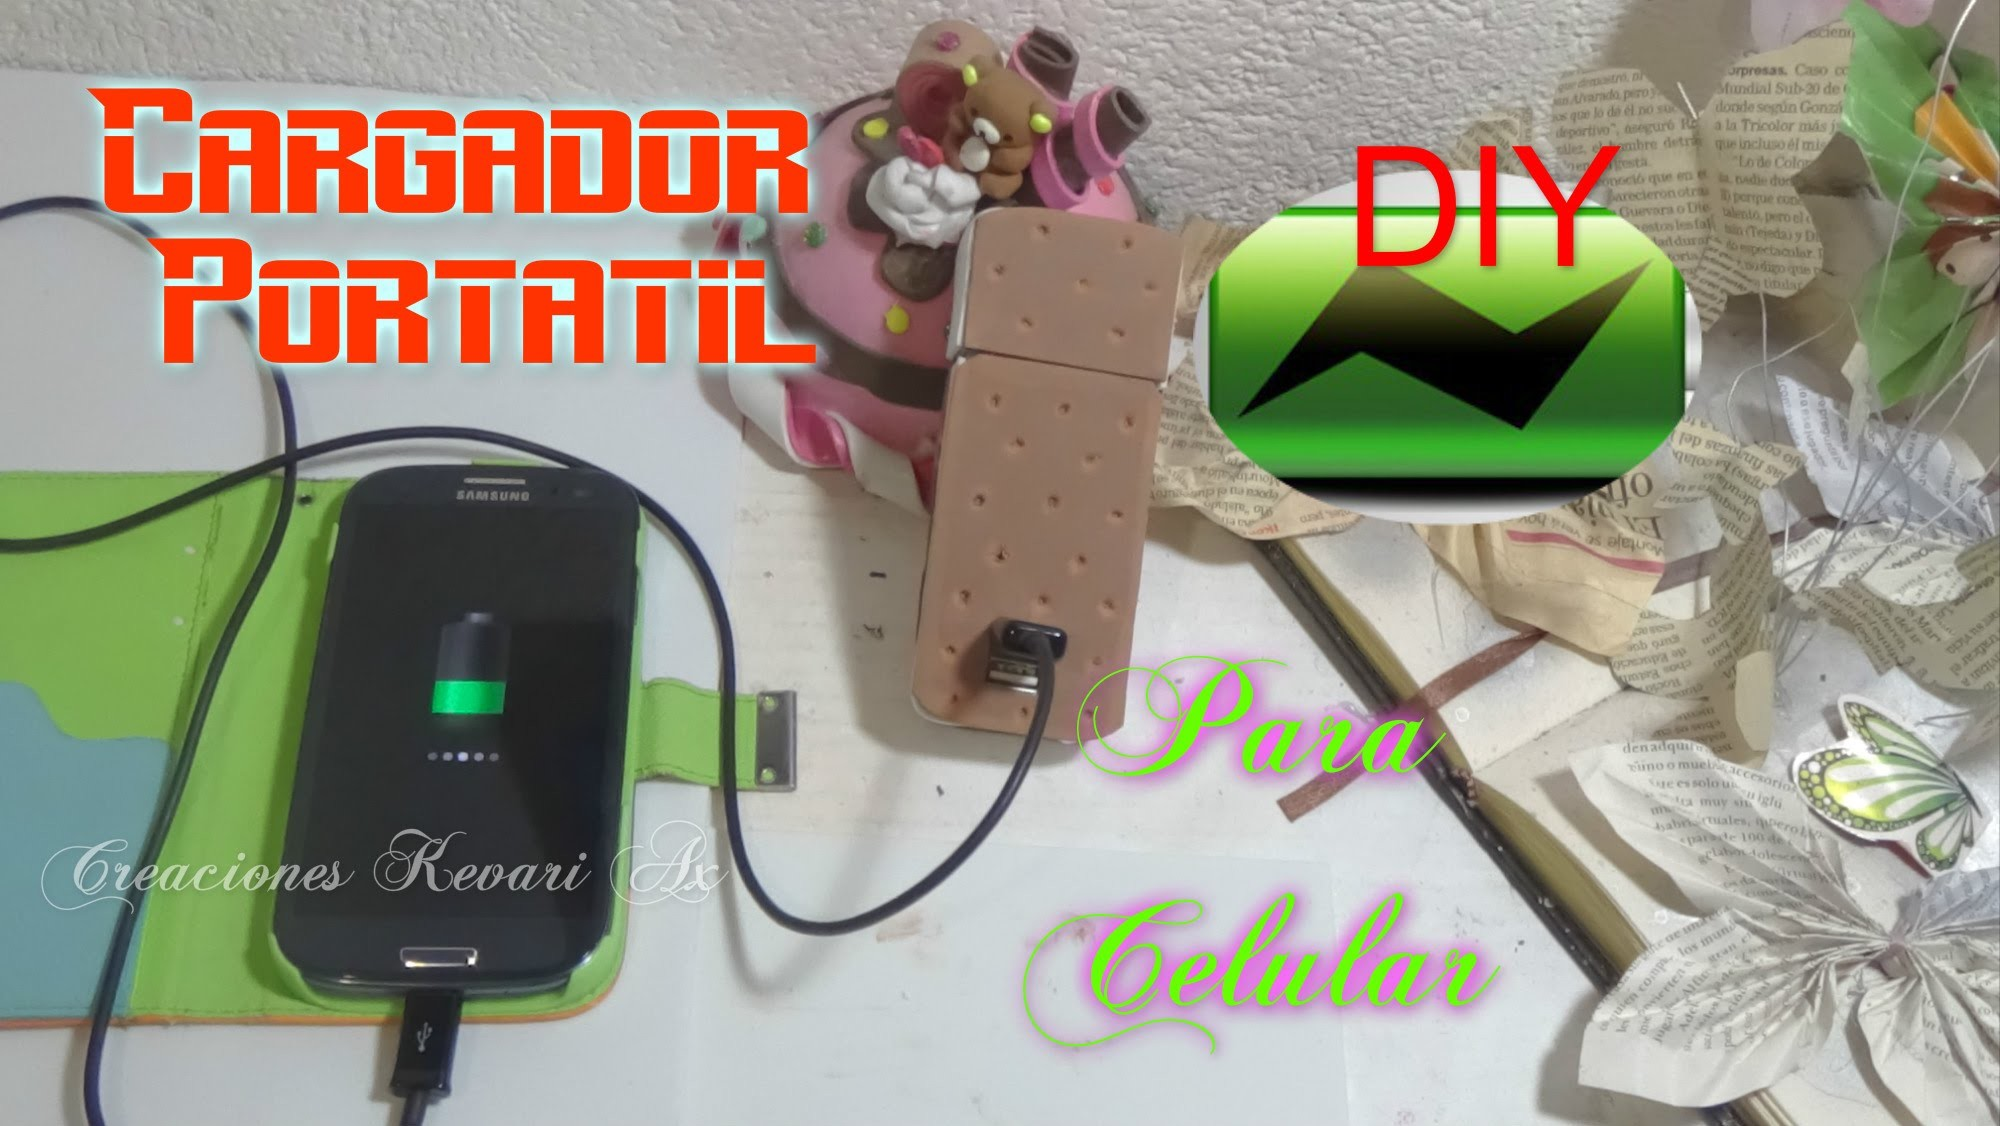 Cargador Portátil Casero para movil Celular USB DIY.How to make a portable cell phone charger